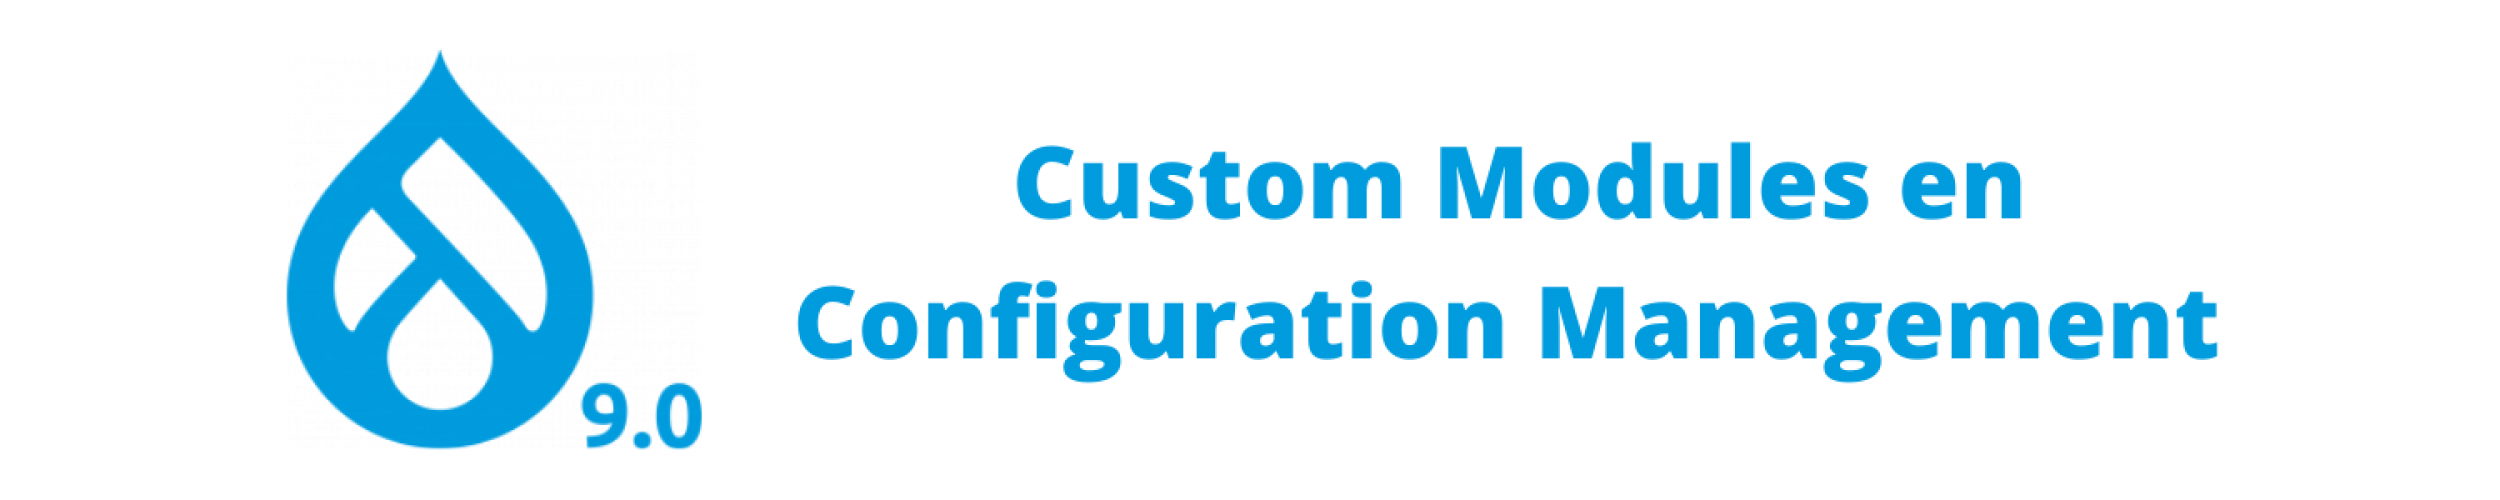 Drupal 9 Custom Modules en Configuration Management